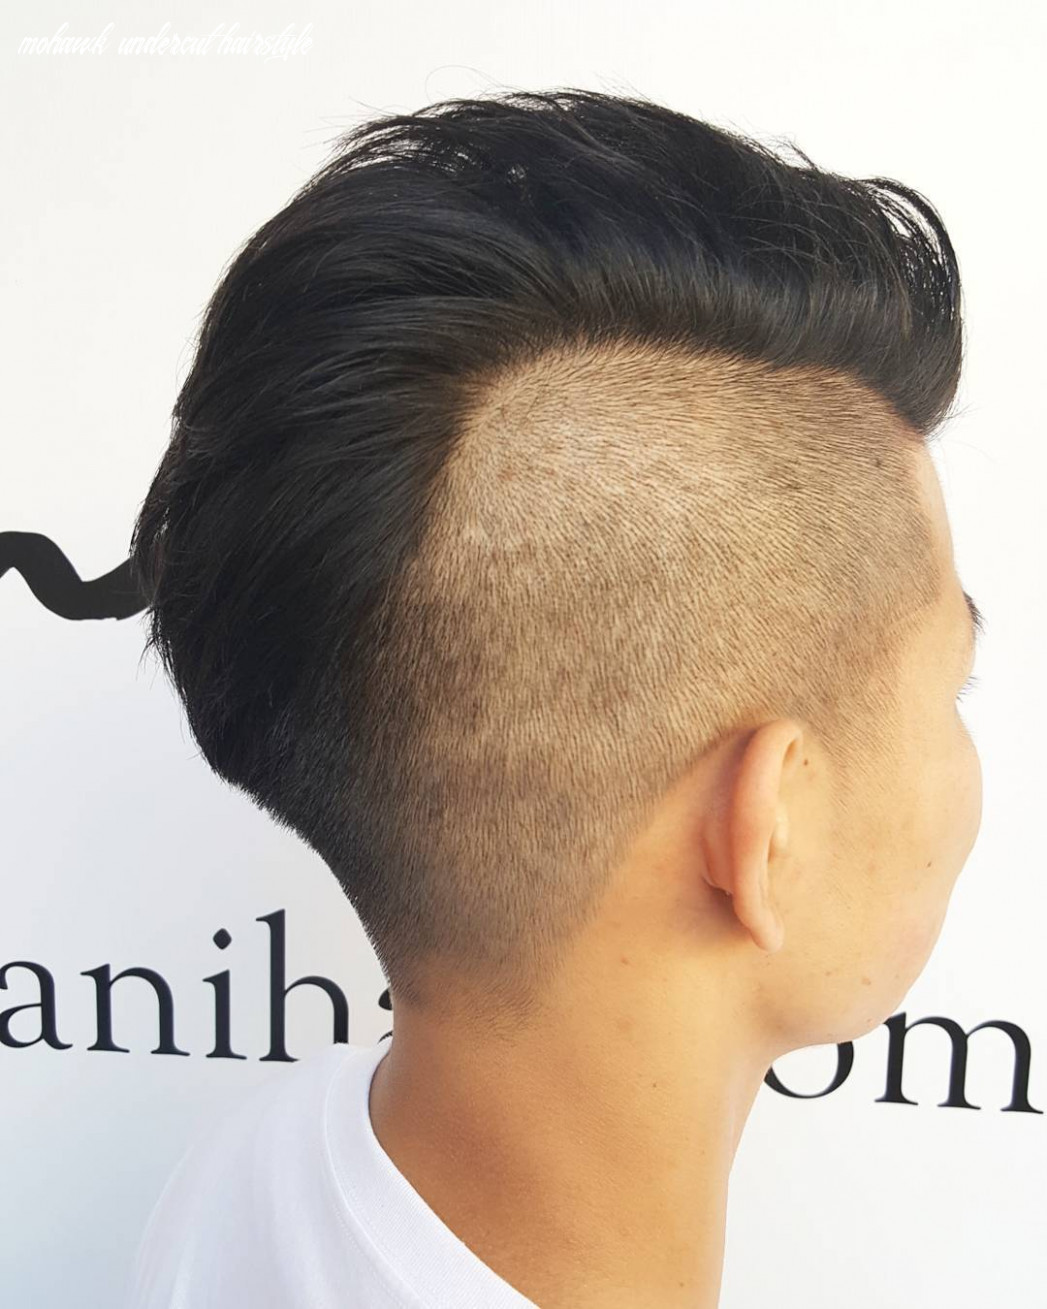 9 mohawk haircuts for 9 > totally cool styles mohawk undercut hairstyle